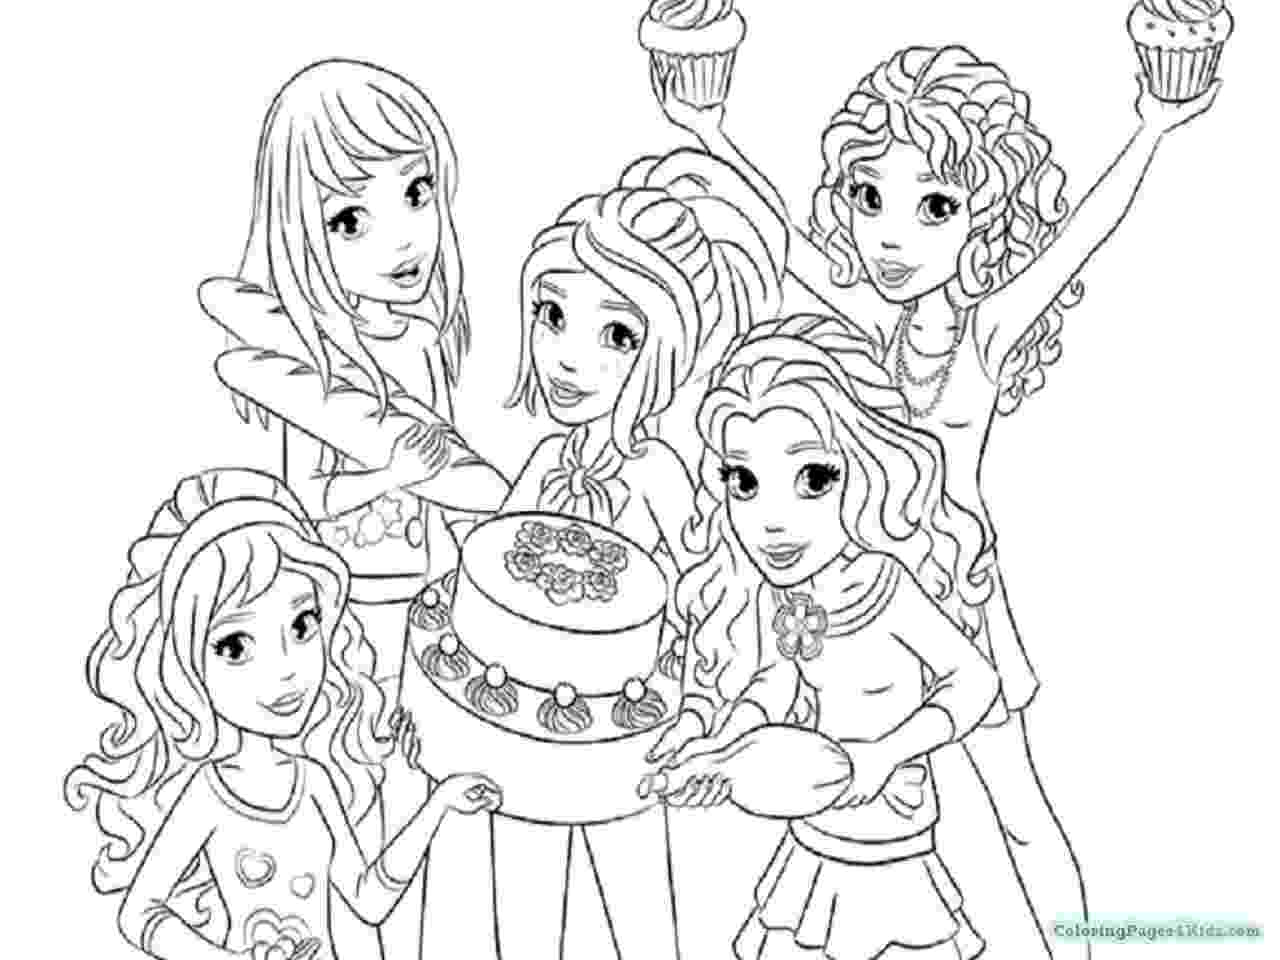 lego friends printable colouring pages print this lego friends coloring sheet printable friends colouring pages lego